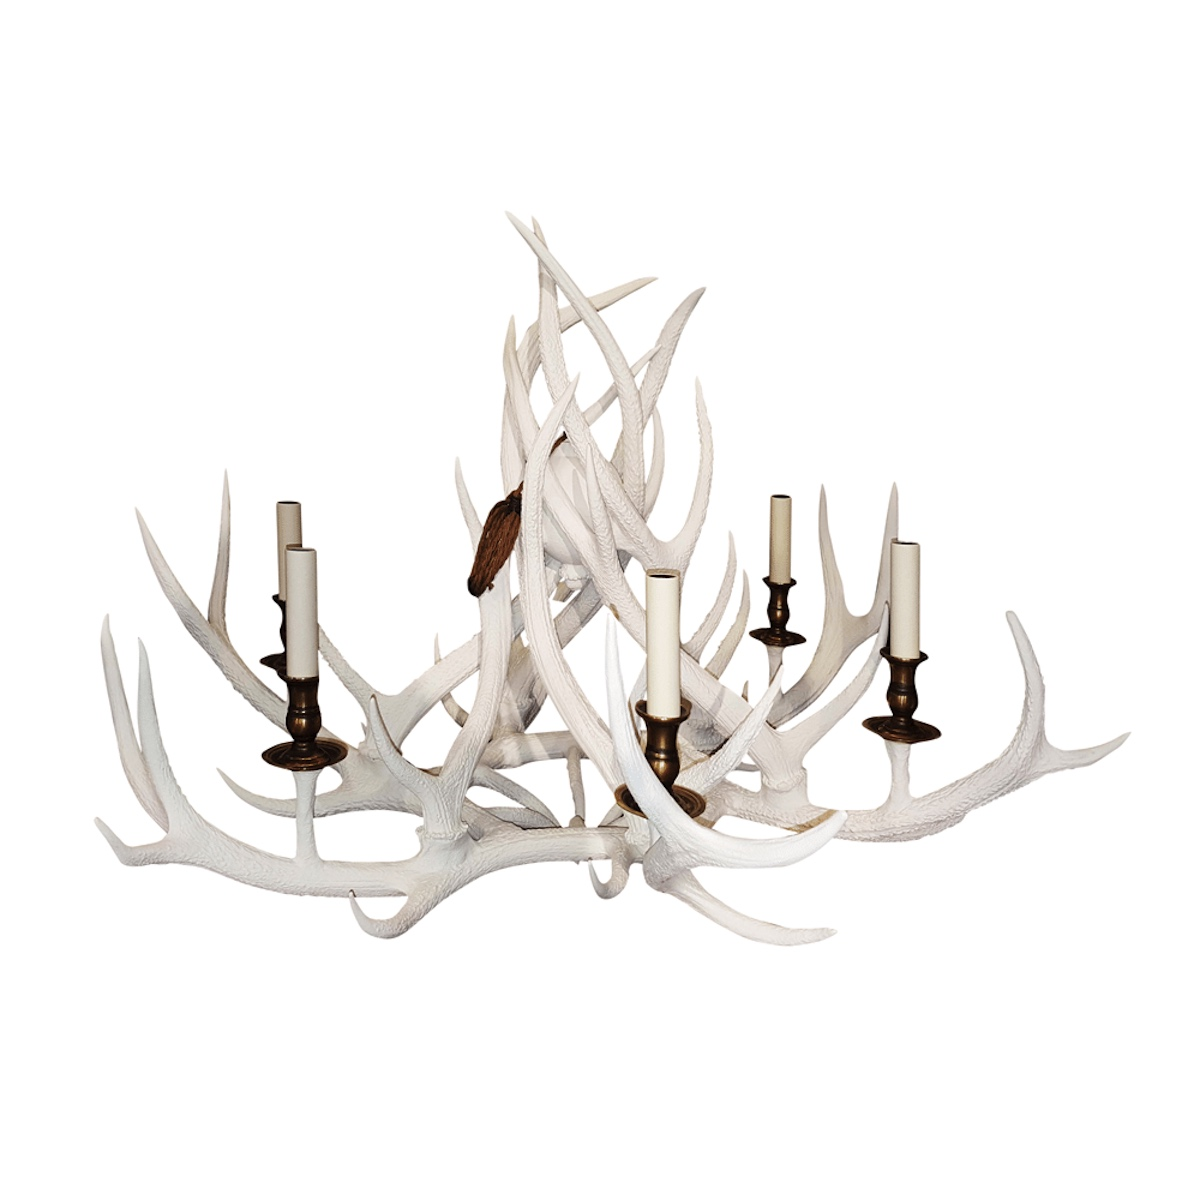 Real Scottish Highlands Ceiling Lighting - Red Deer Antler Painted Chandelier